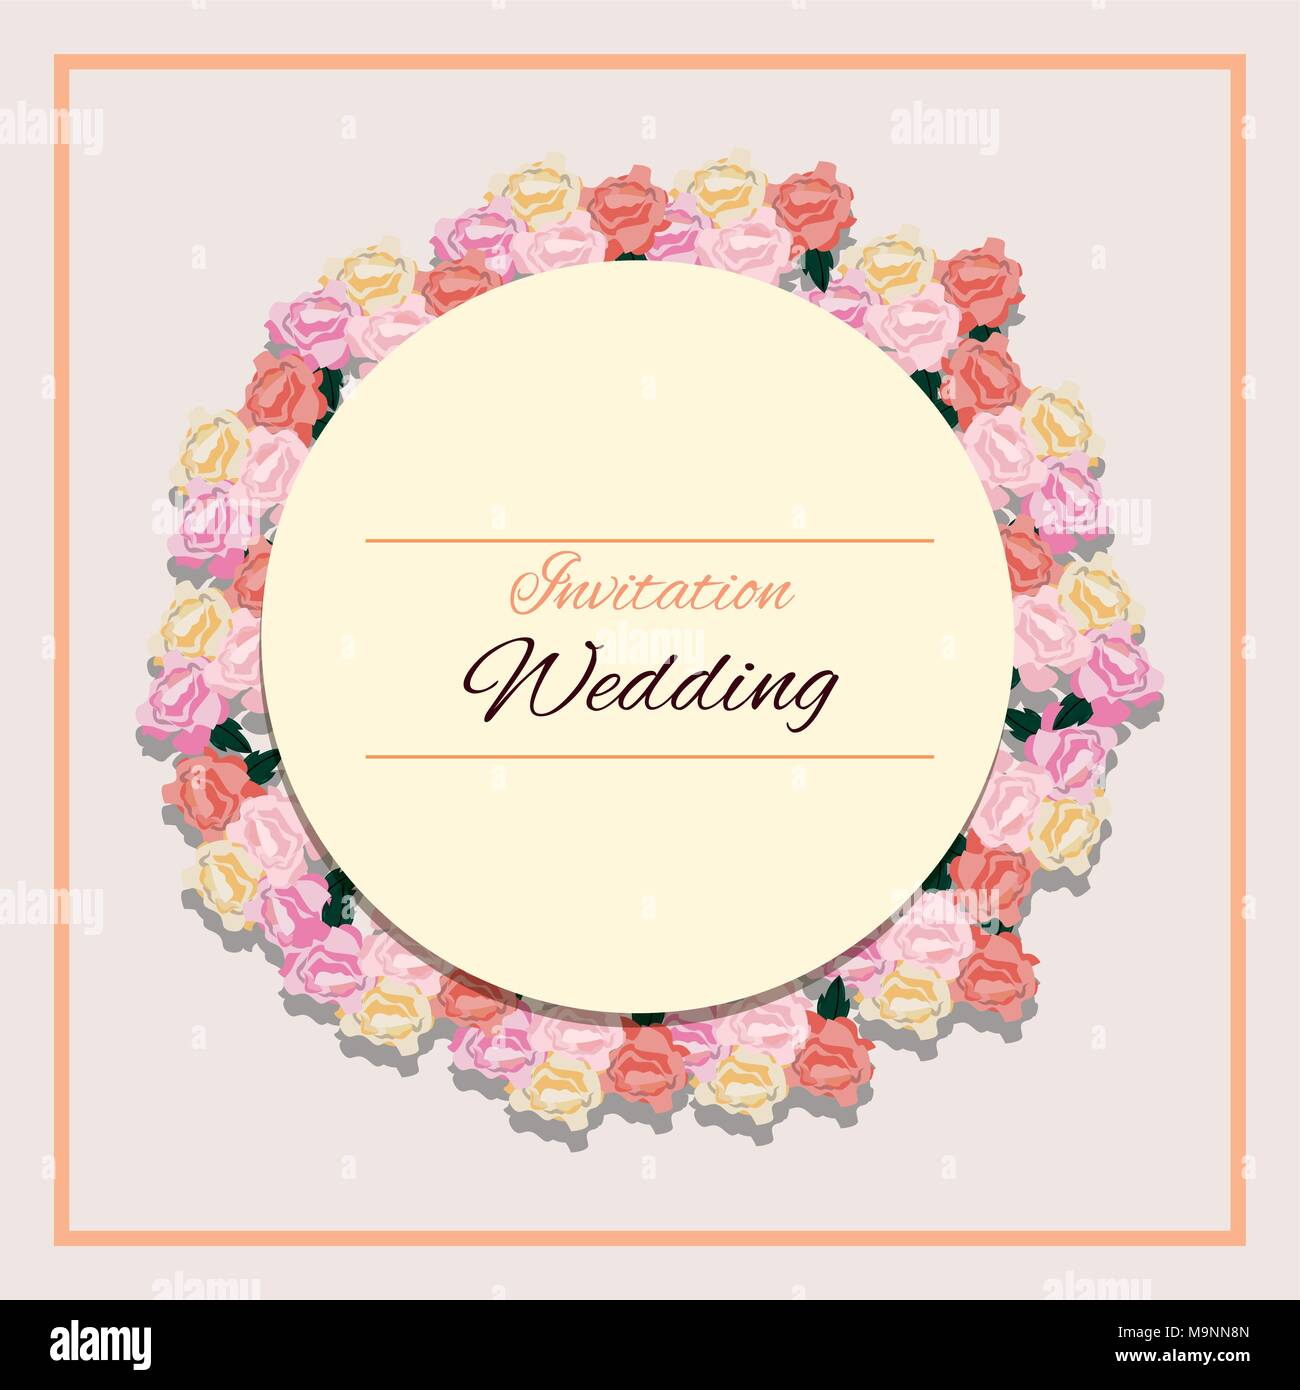 floral wedding invitation design with circular frame and